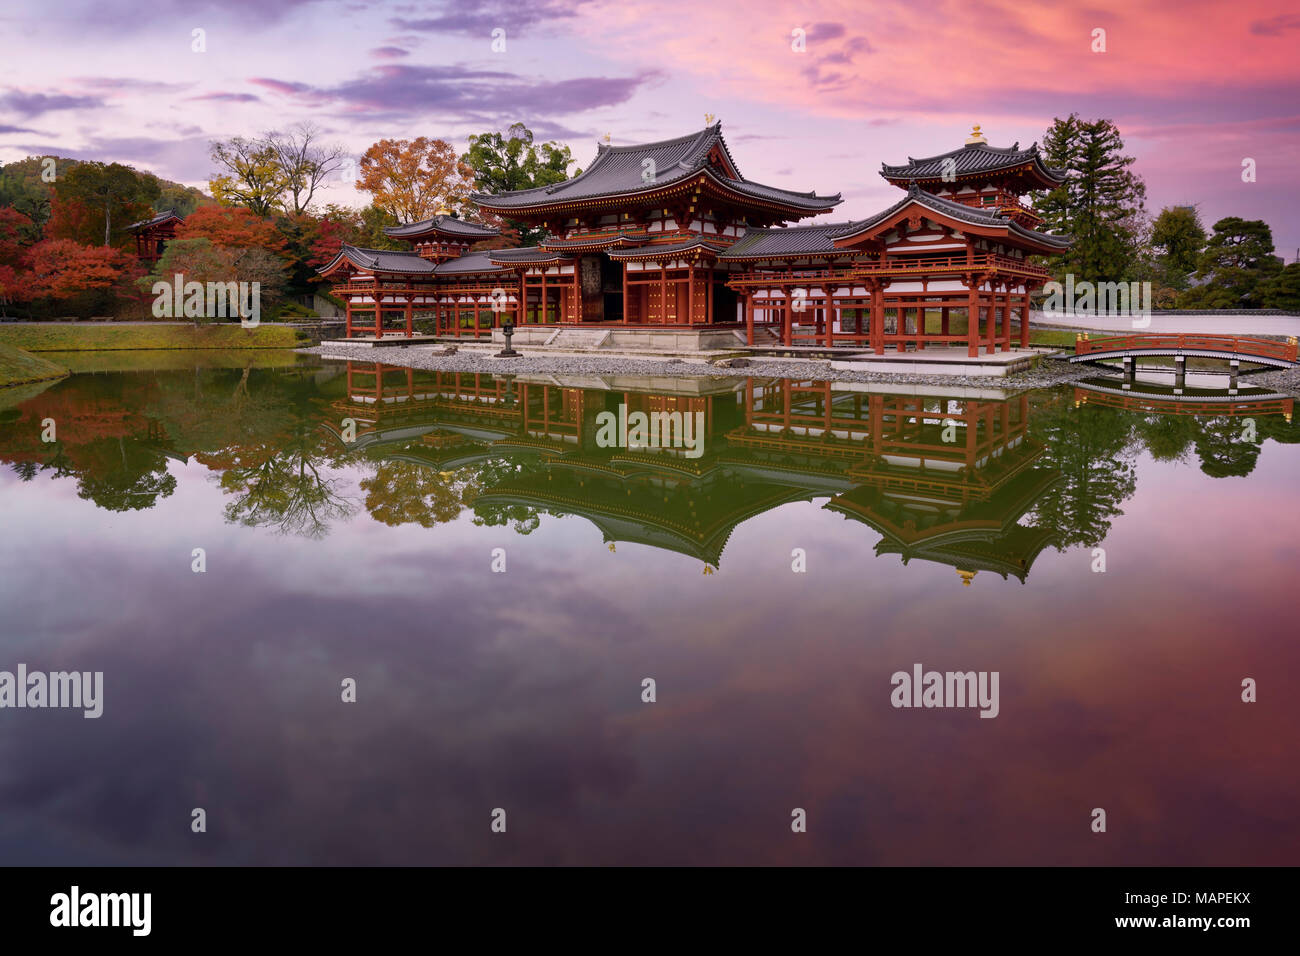 Peaceful autumn scenery of the Phoenix Hall, Amida hall of Byodoin temple on Kojima island of Jodoshiki teien, Pure Land garden pond. Uji, Kyoto Prefe - Stock Image